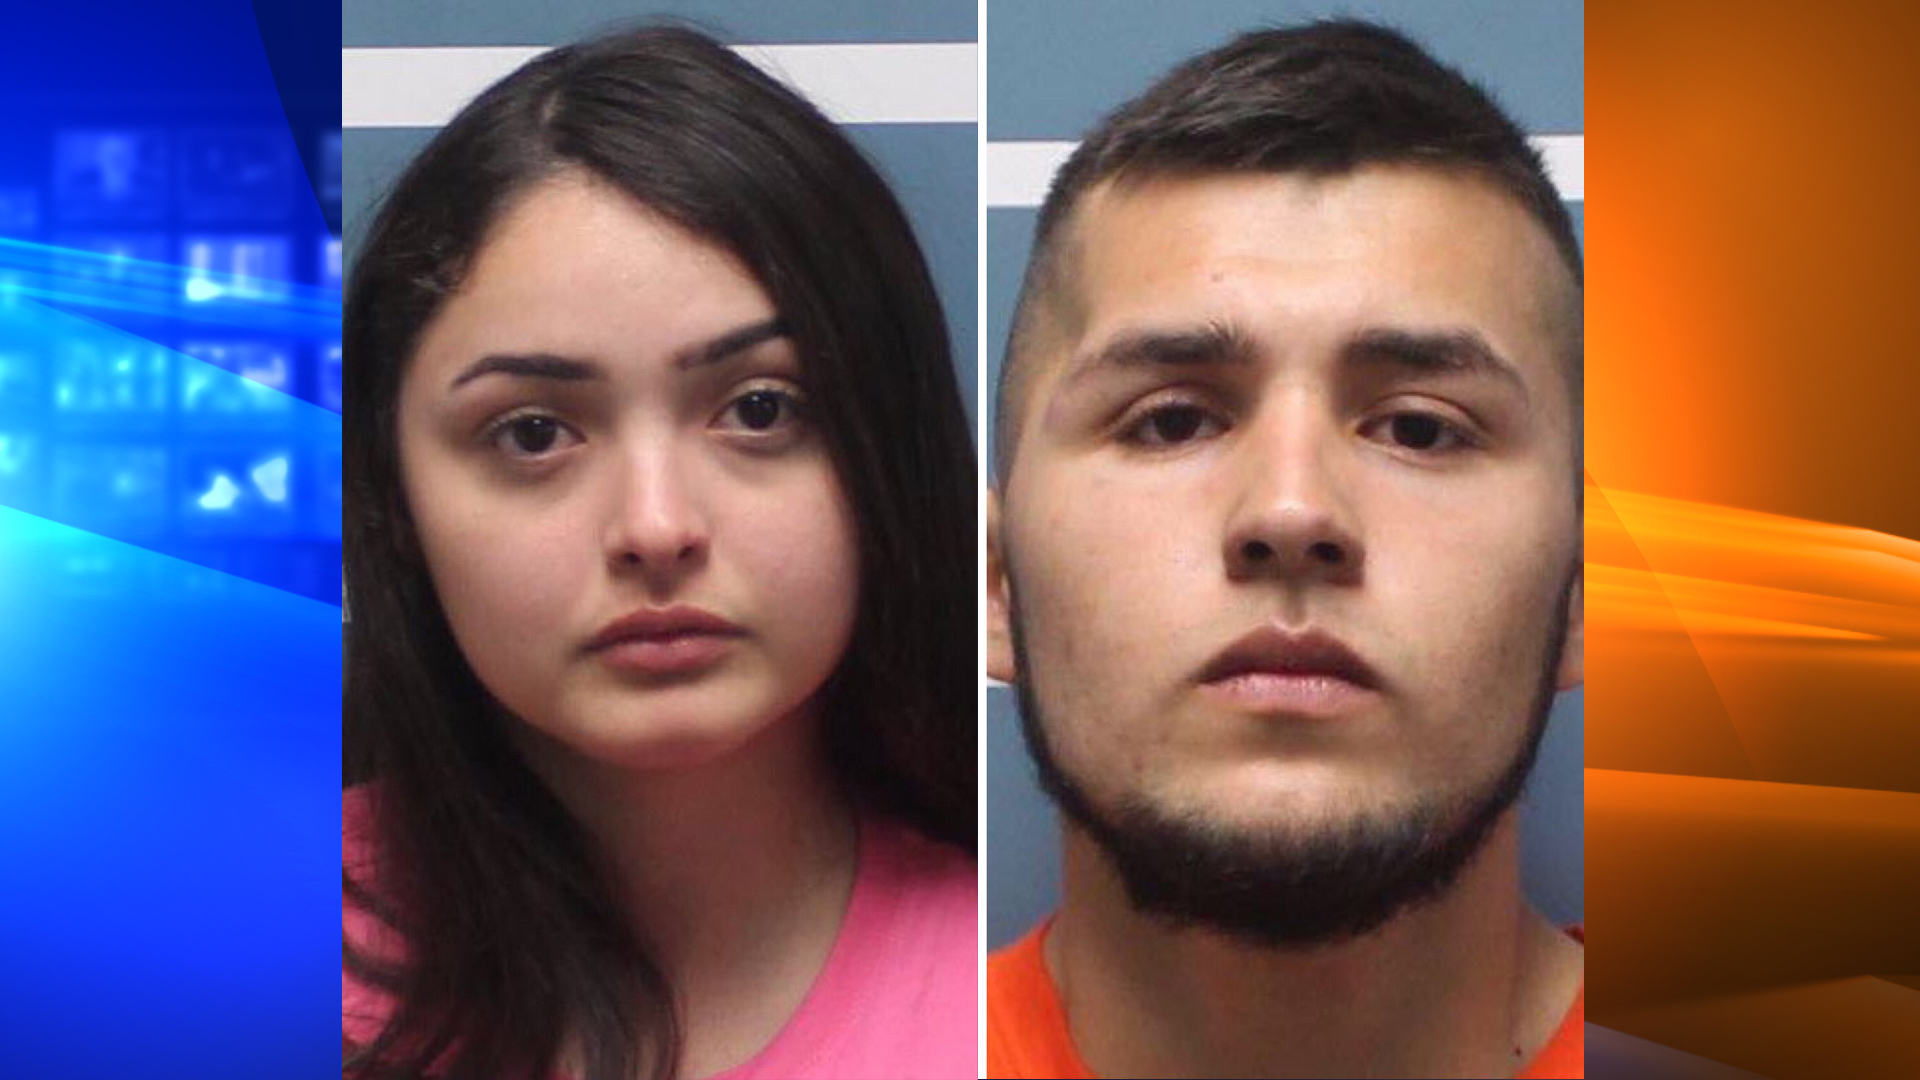 Vanessa Macias, 19, and Jesus Fernandez, 18, are seen in undated photos provided by the Tulare County Sheriff's Office on Oct. 19, 2019.